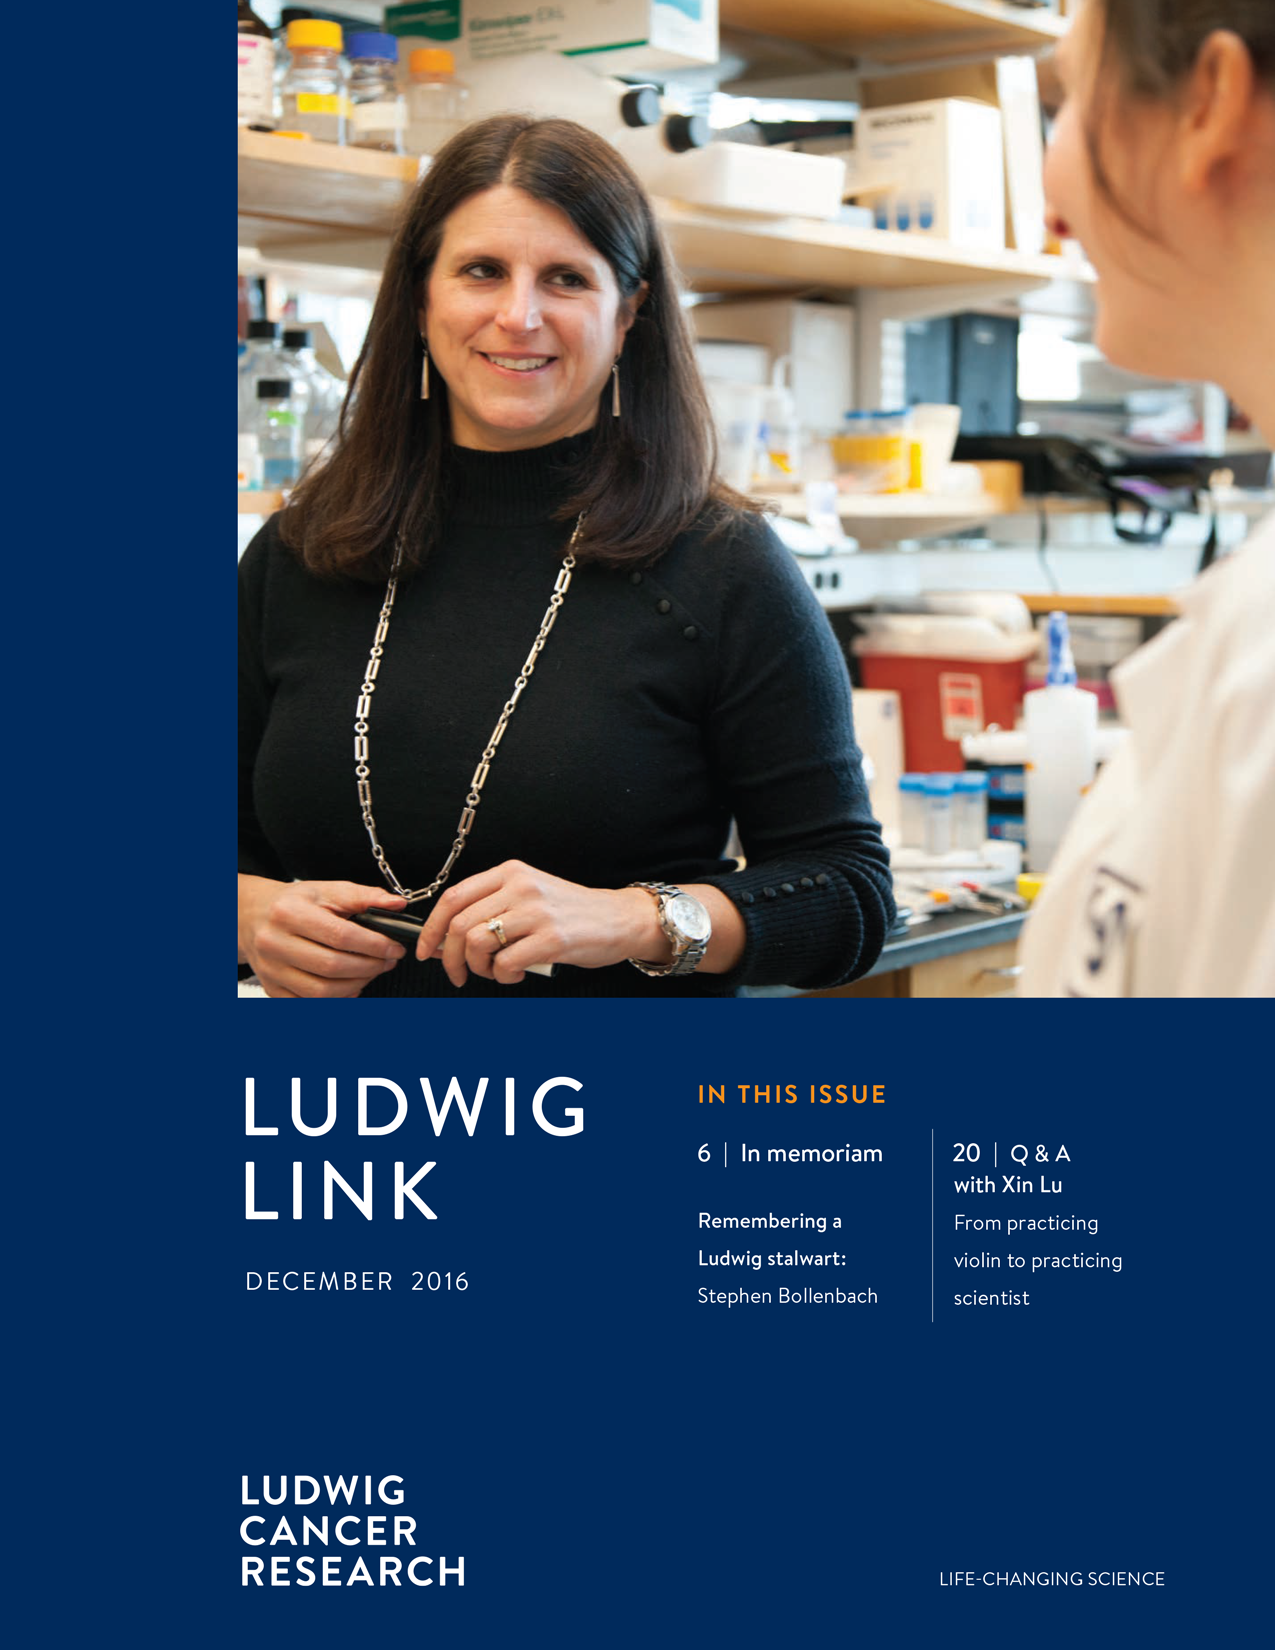 Ludwig Link December 2016 cover